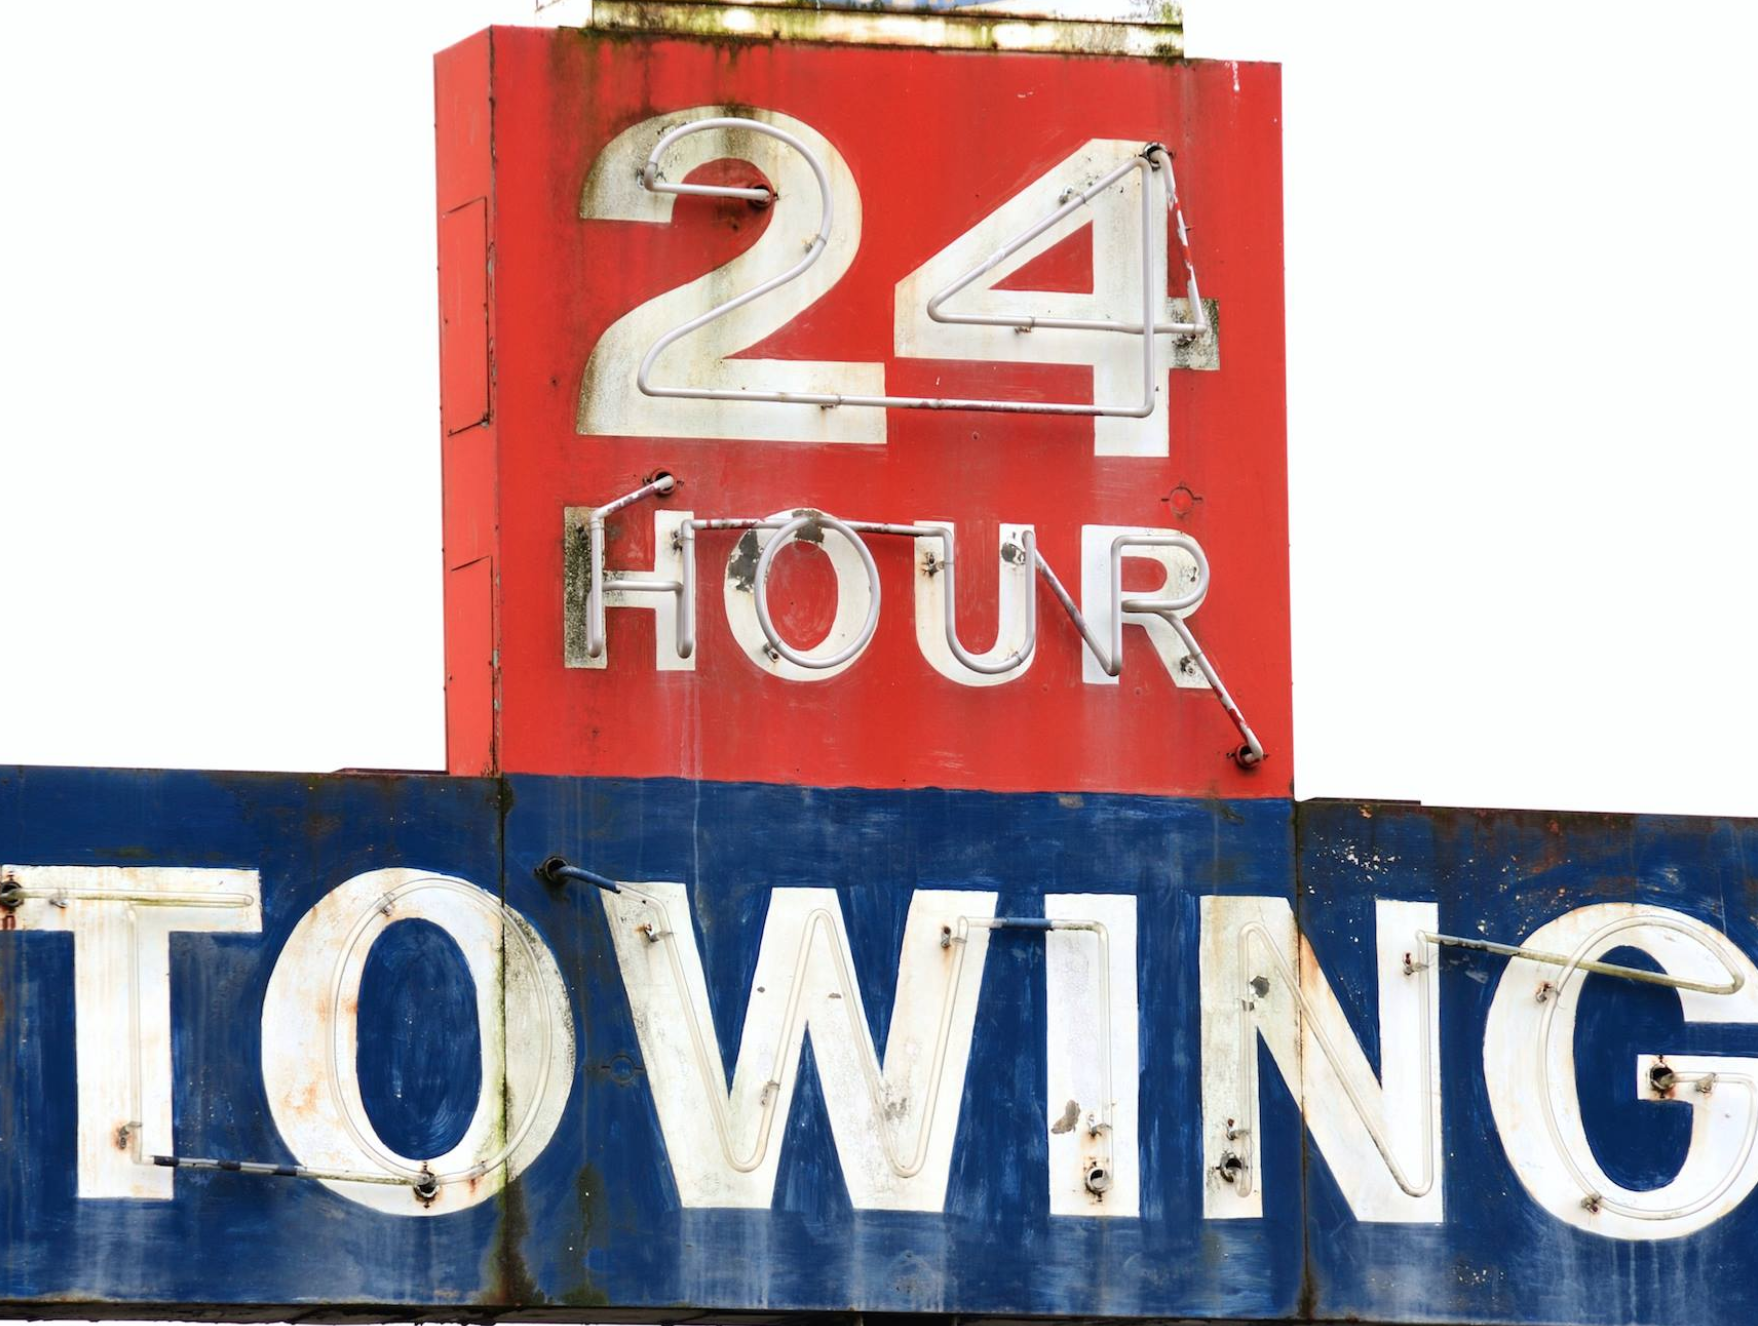 Capital City Towing | The Premier Towing Service in Washington DC